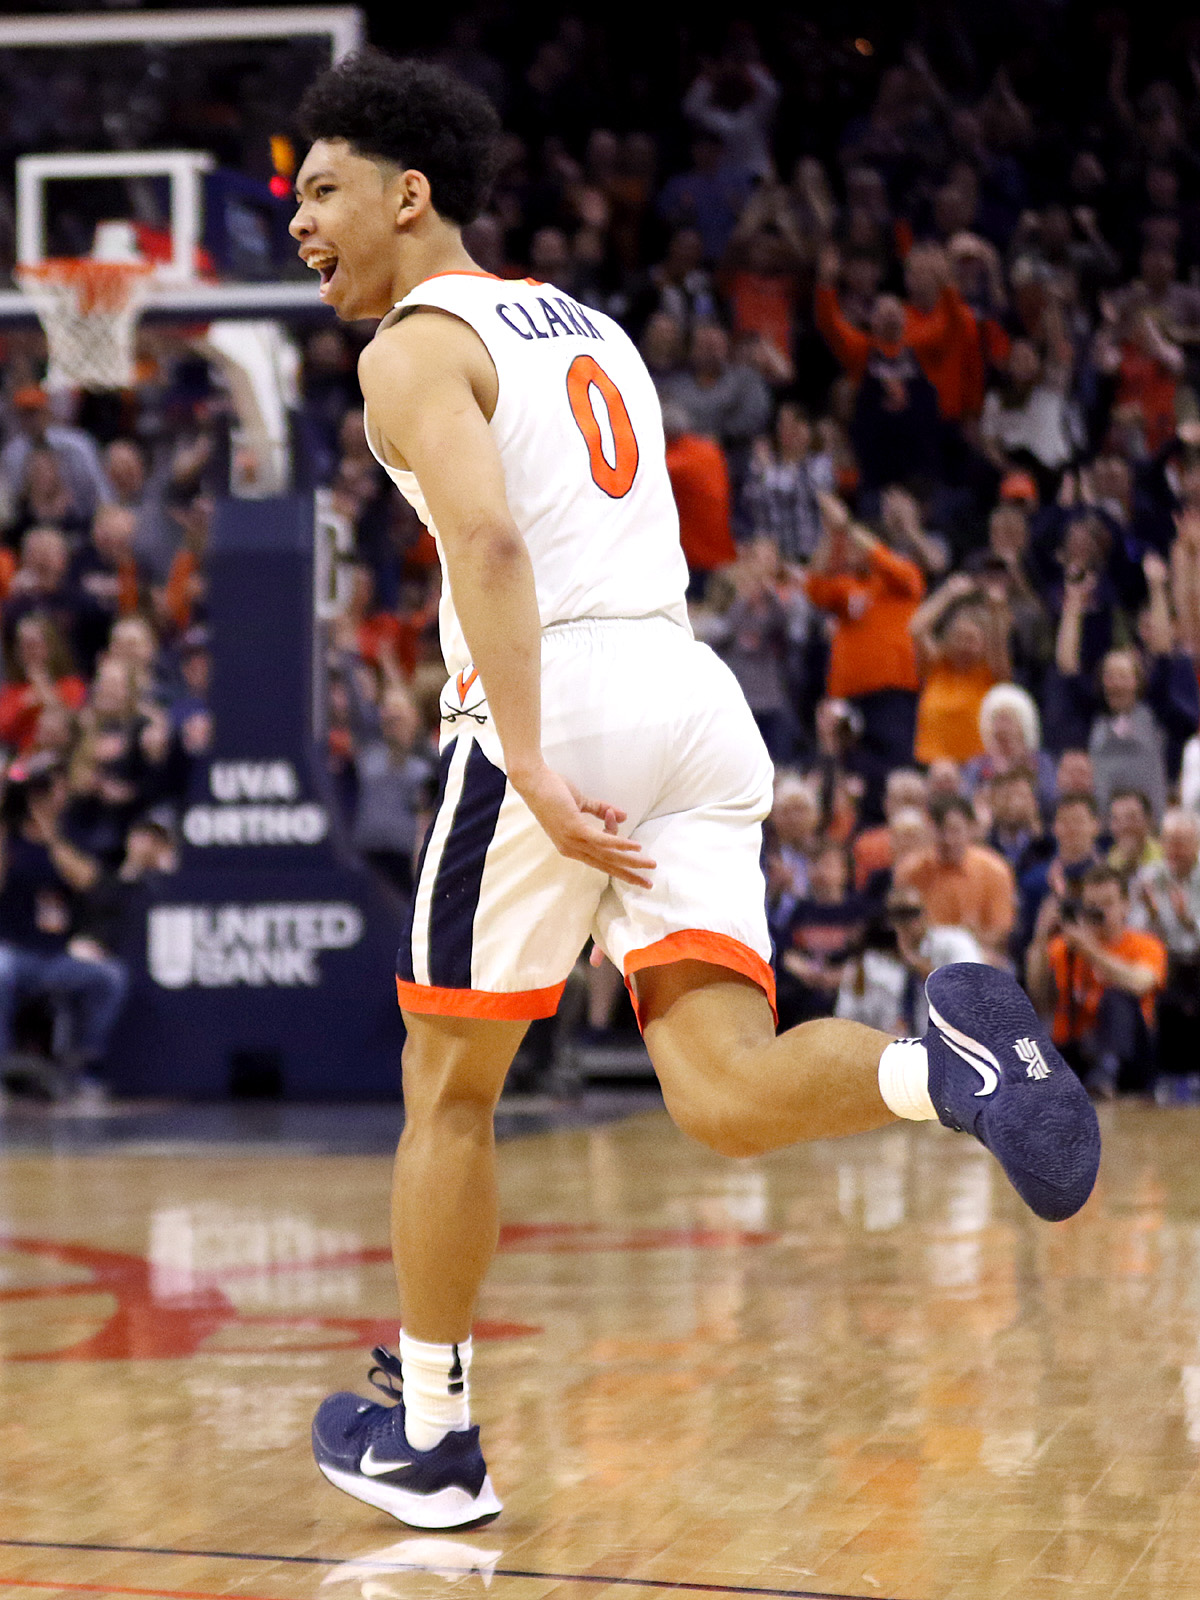 Virginia won 23 games.